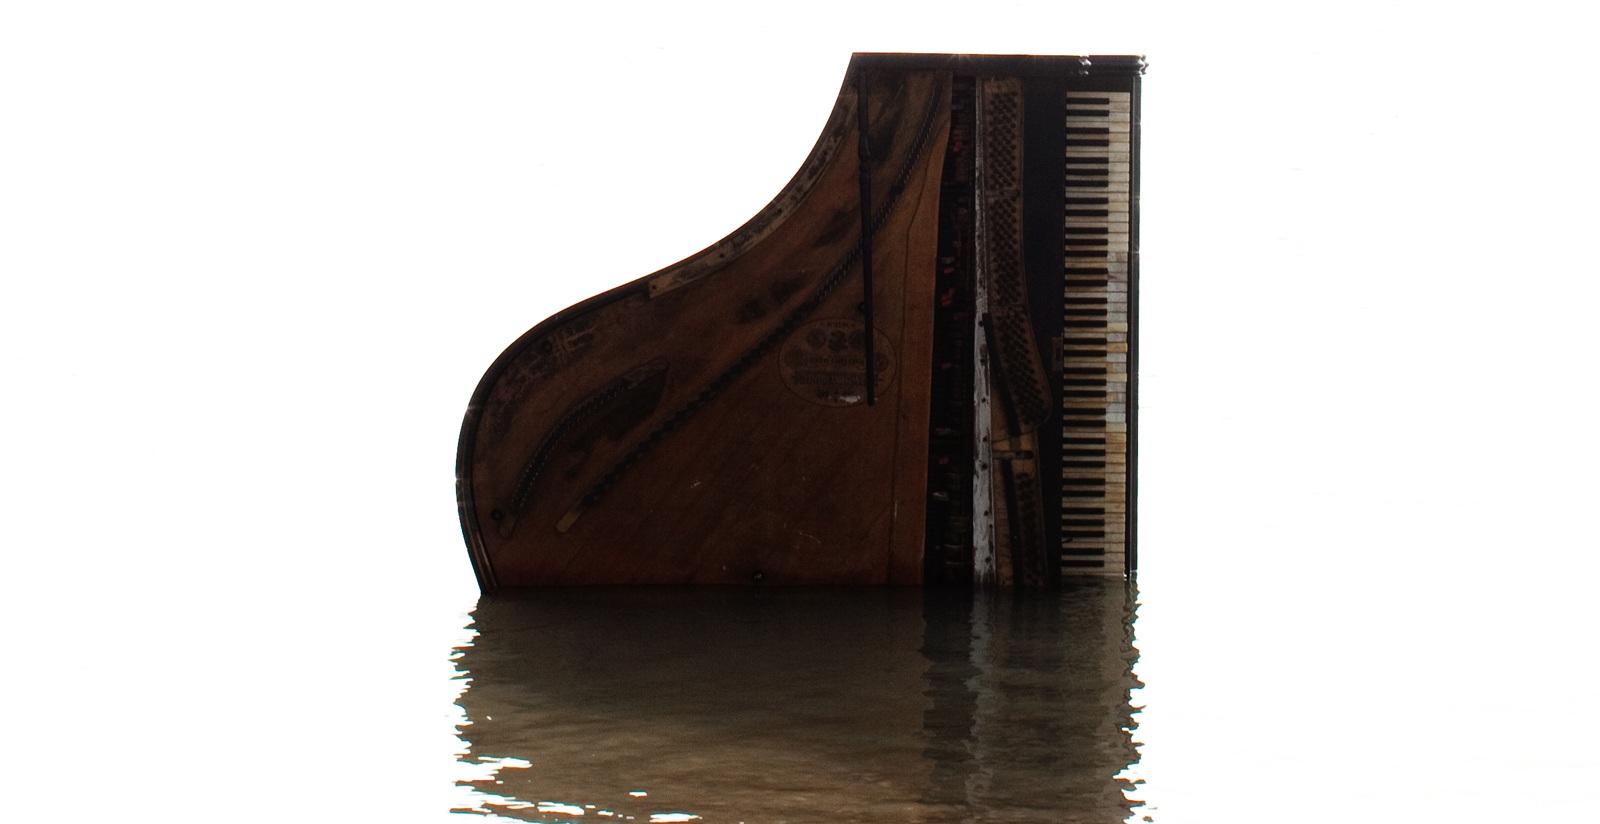 Trio Clavis Piano in Water